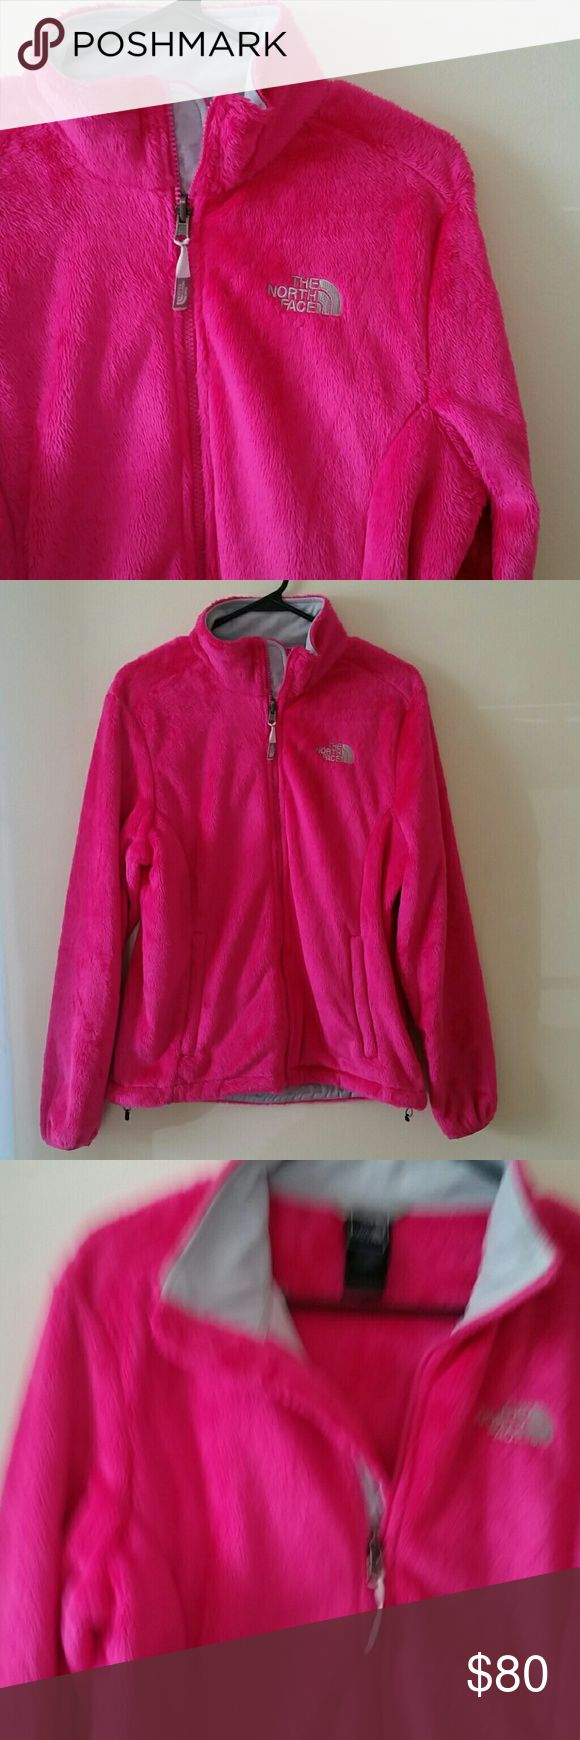 The North Face Fleece Jacket Hot pink fleece inside & out North Face jacket with gray lining - never worn The North Face Jackets & Coats